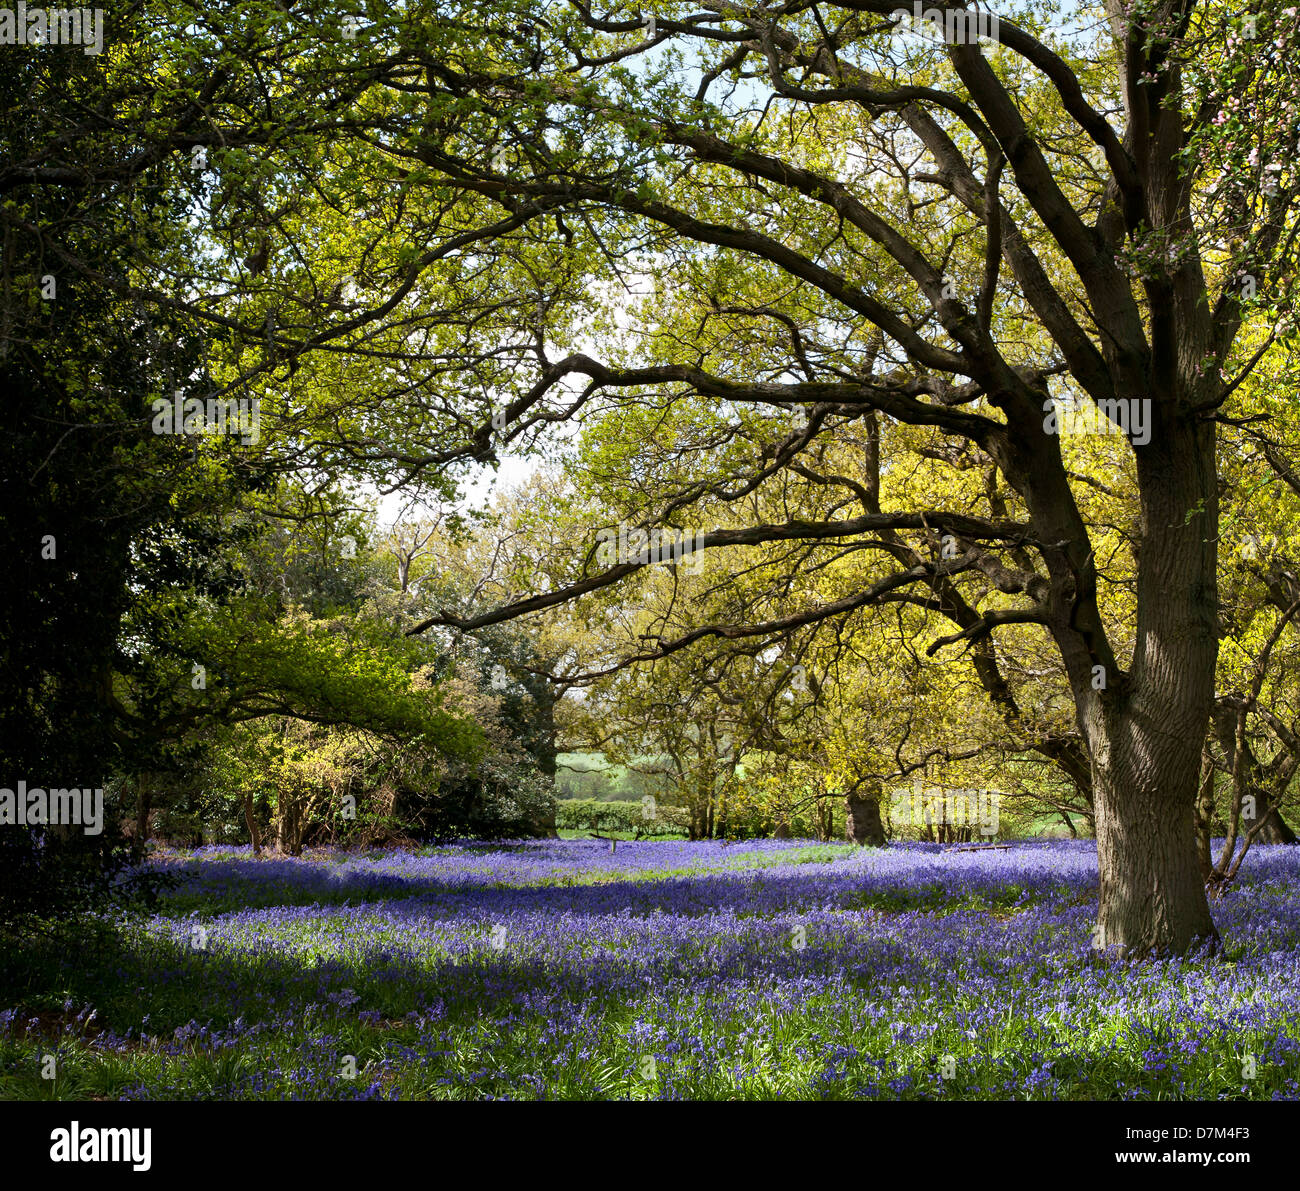 BLUEBELLS GROWING AT HILLHOUSE WOODS IN WEST BERGHOLT, COLCHESTER, ESSEX, ENGLAND - Stock Image